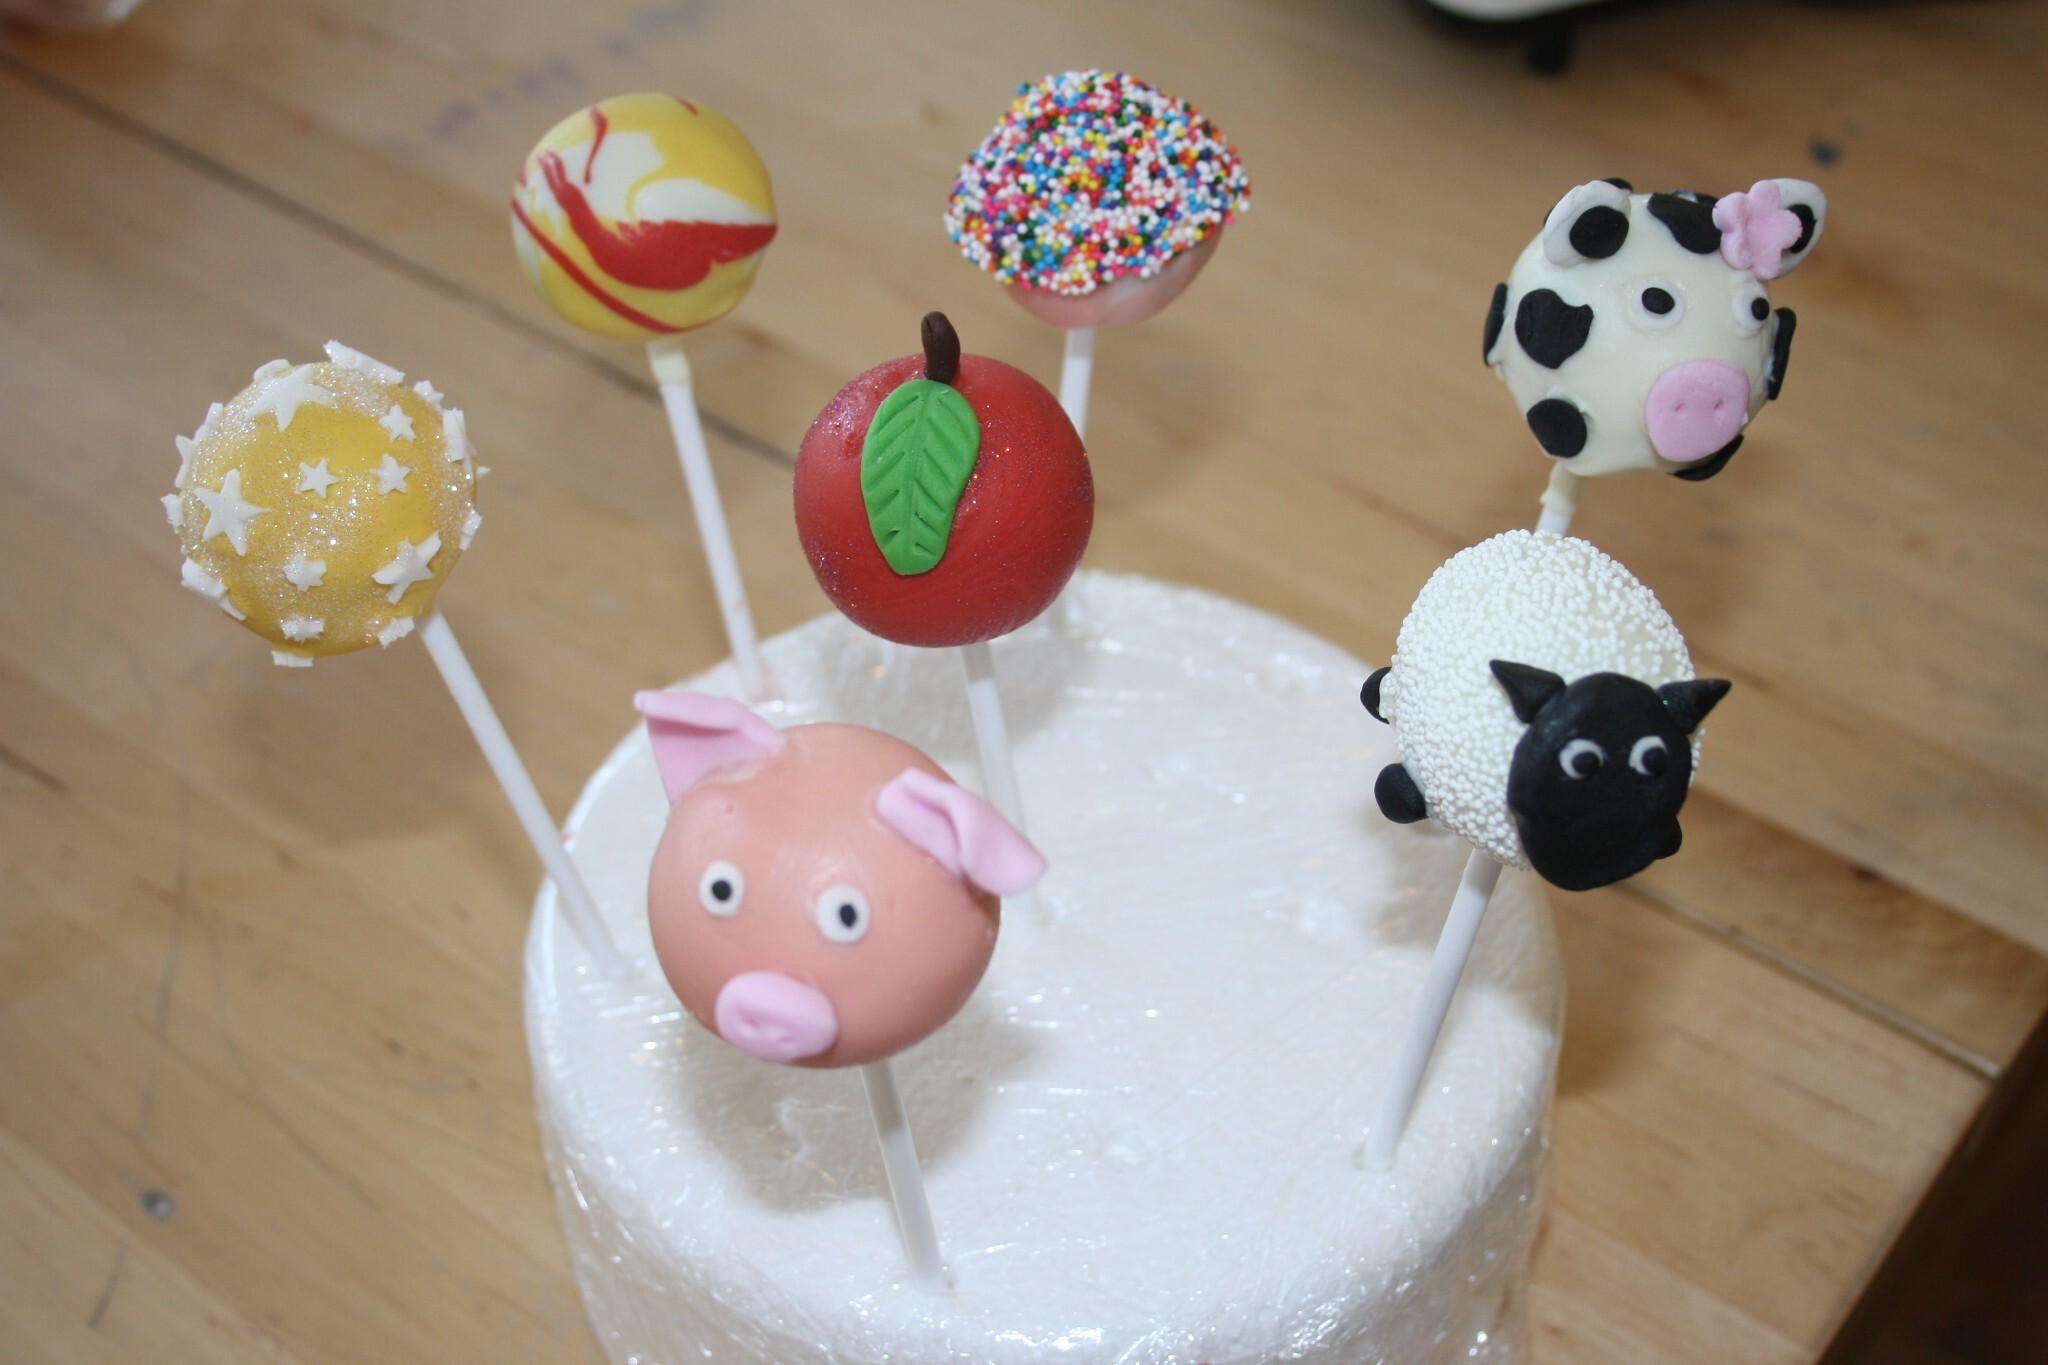 Cake Pops Decorating Class - Pigs, Sheep and Cows